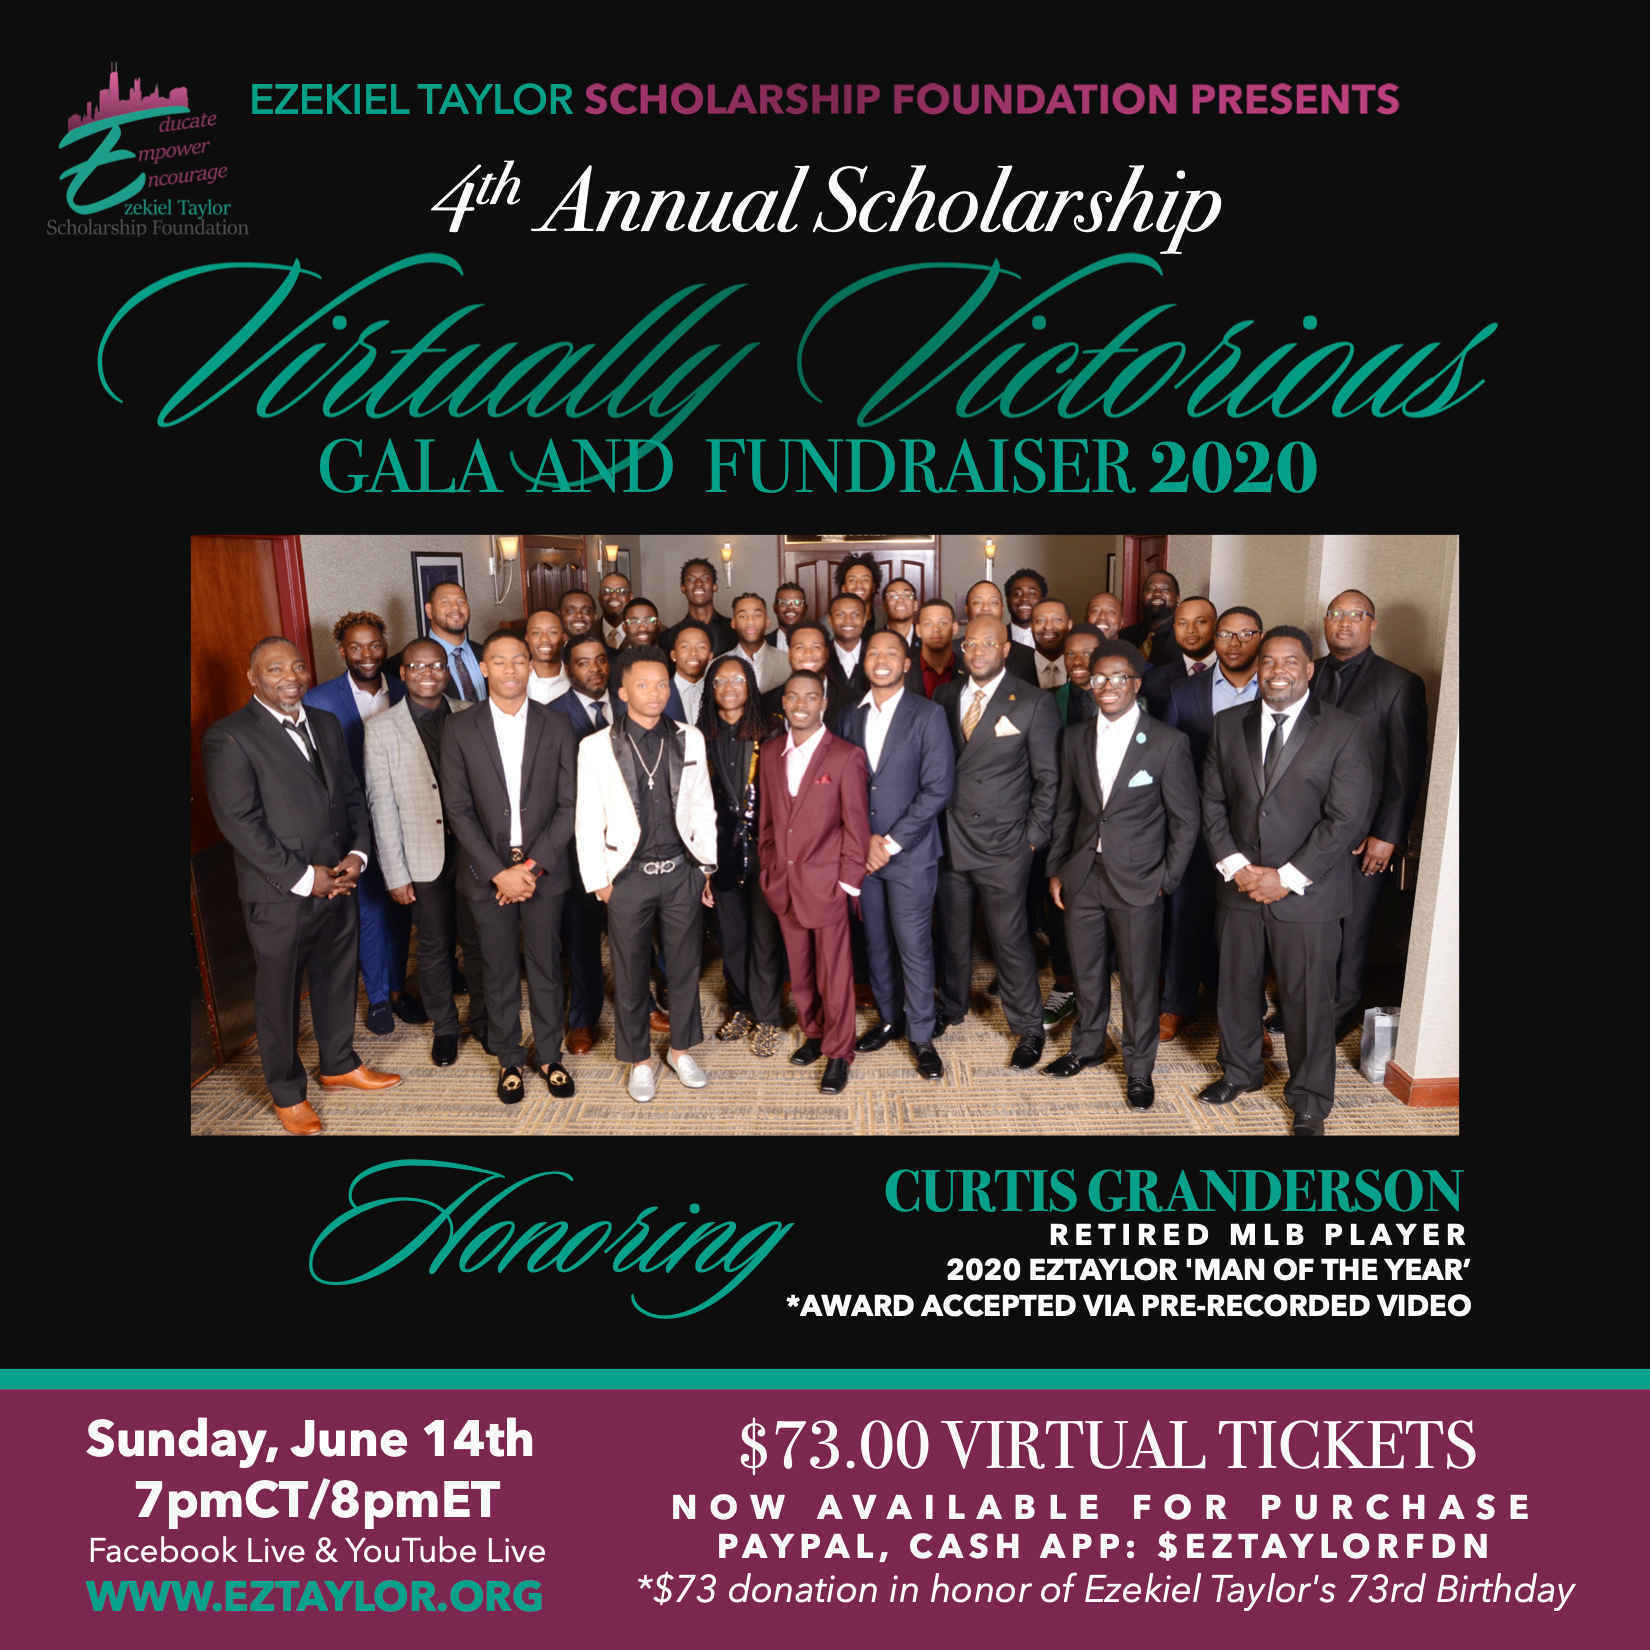 Ezekiel Taylor Foundation 'Virtually Victorious' Scholarship Gala & Auction image